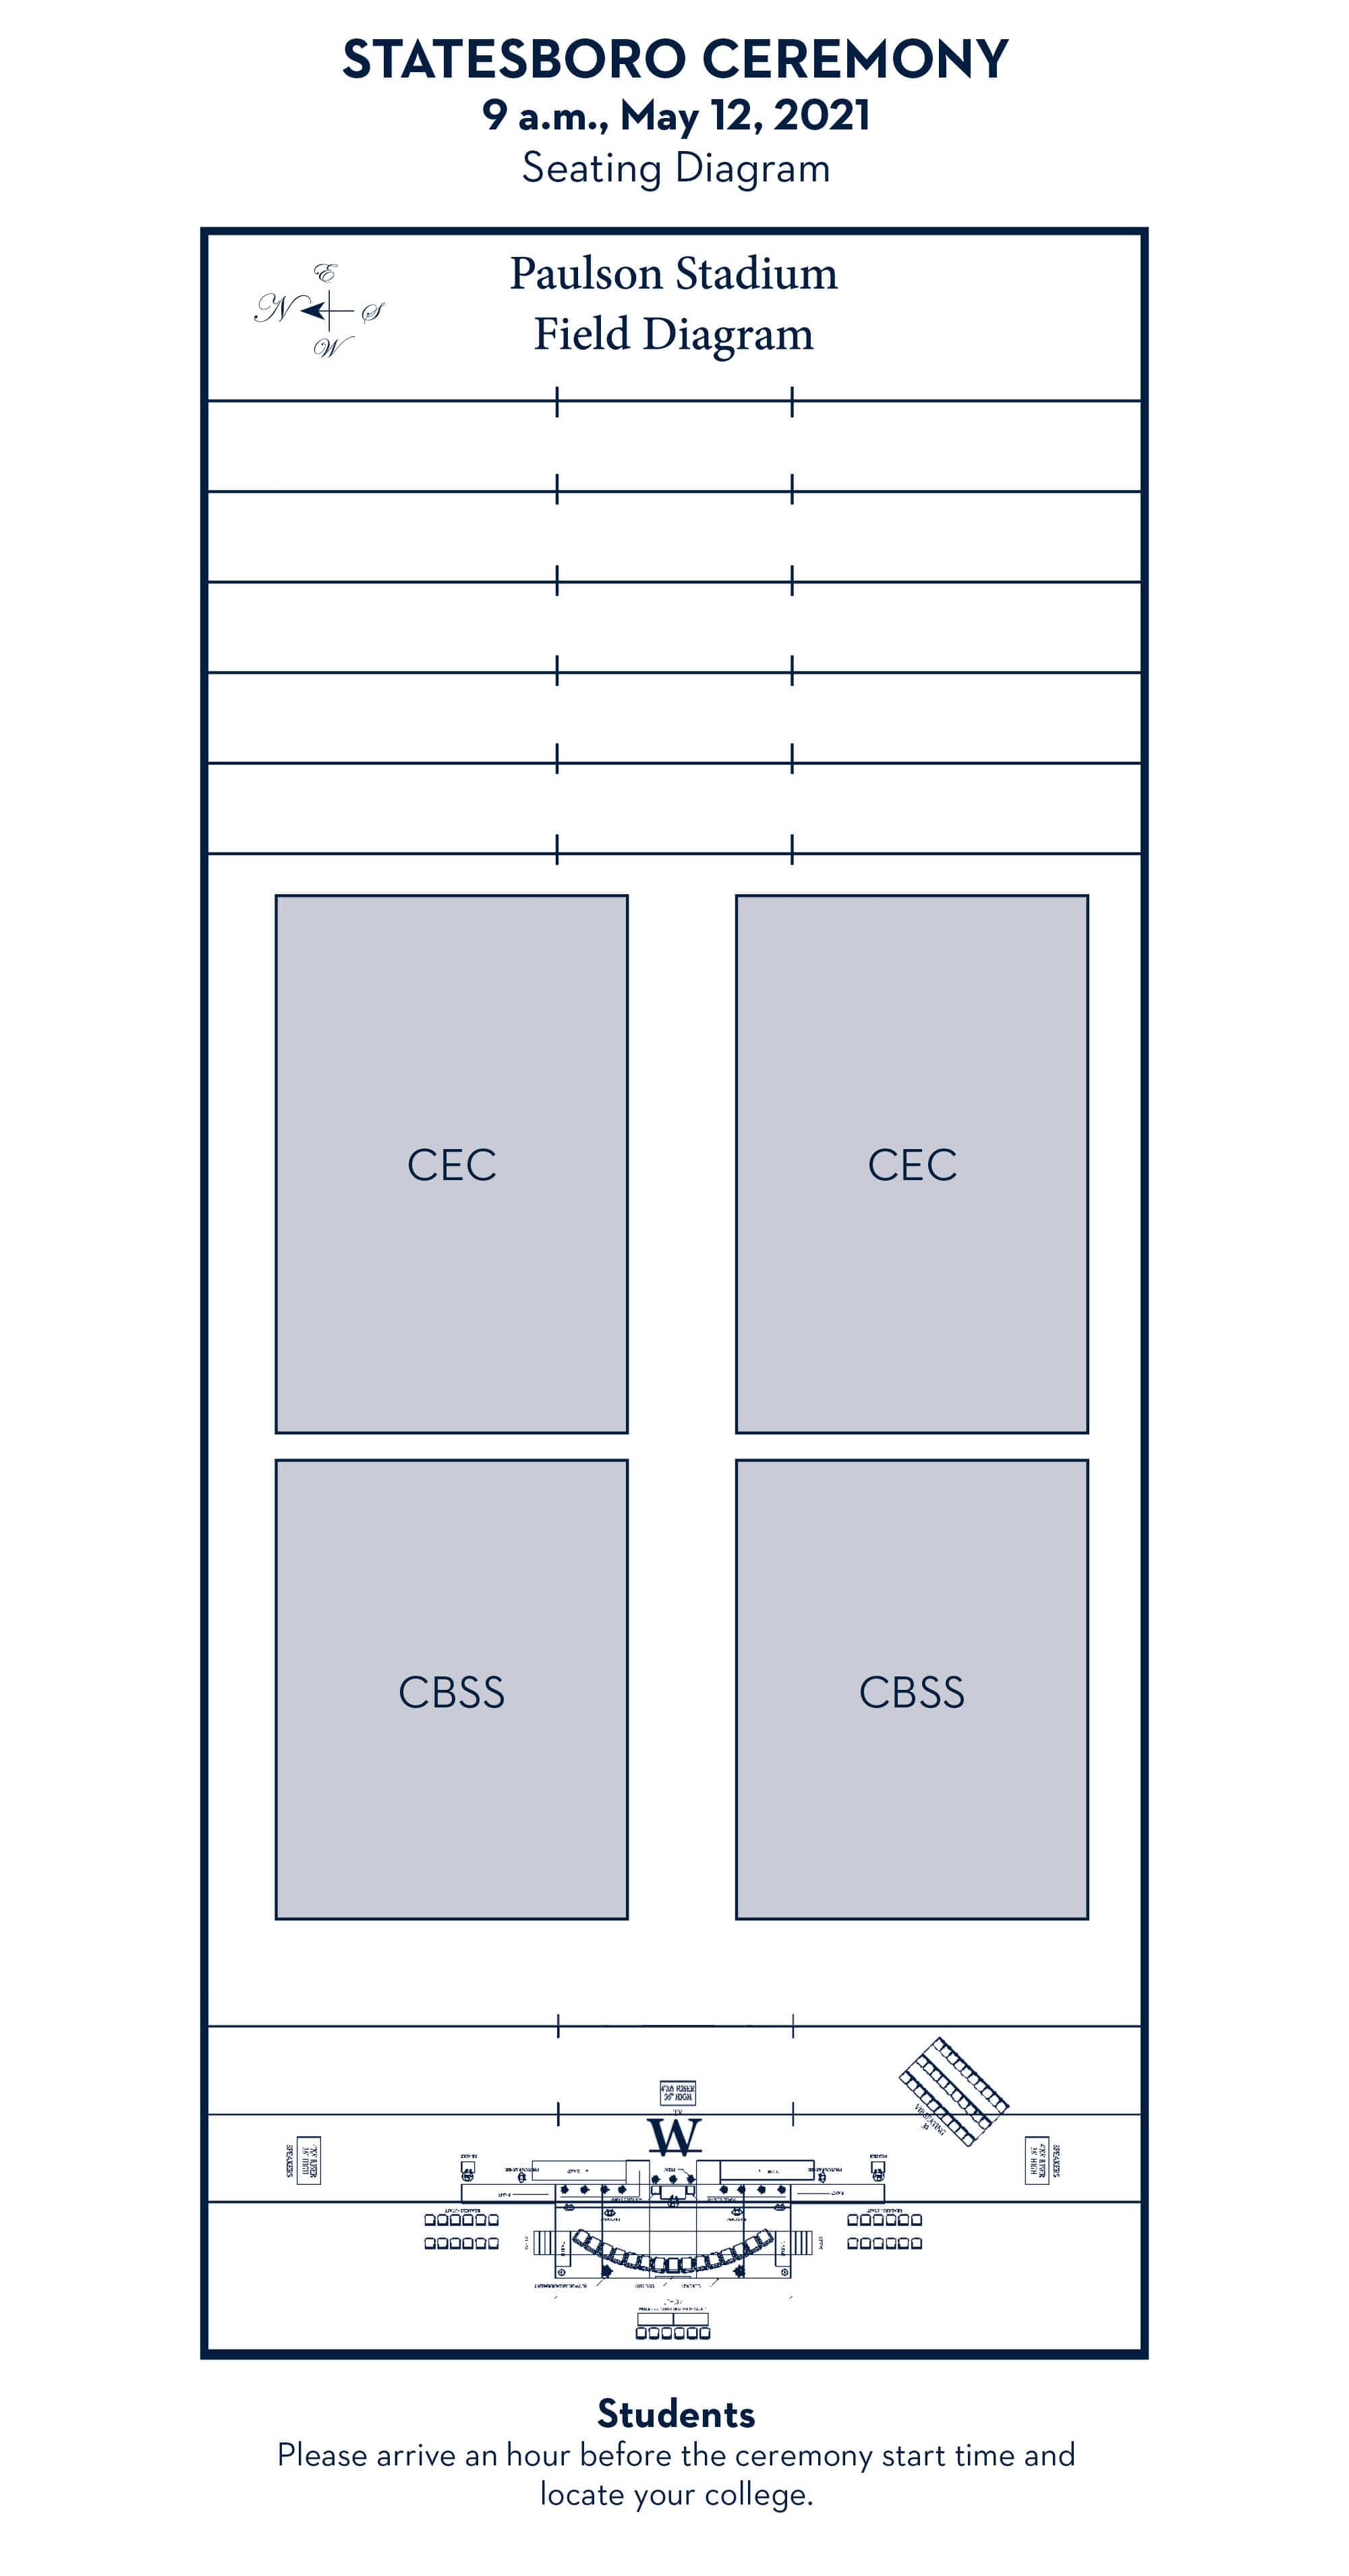 paulson stadium field diagram showing CEC in the back and CBSS in the front